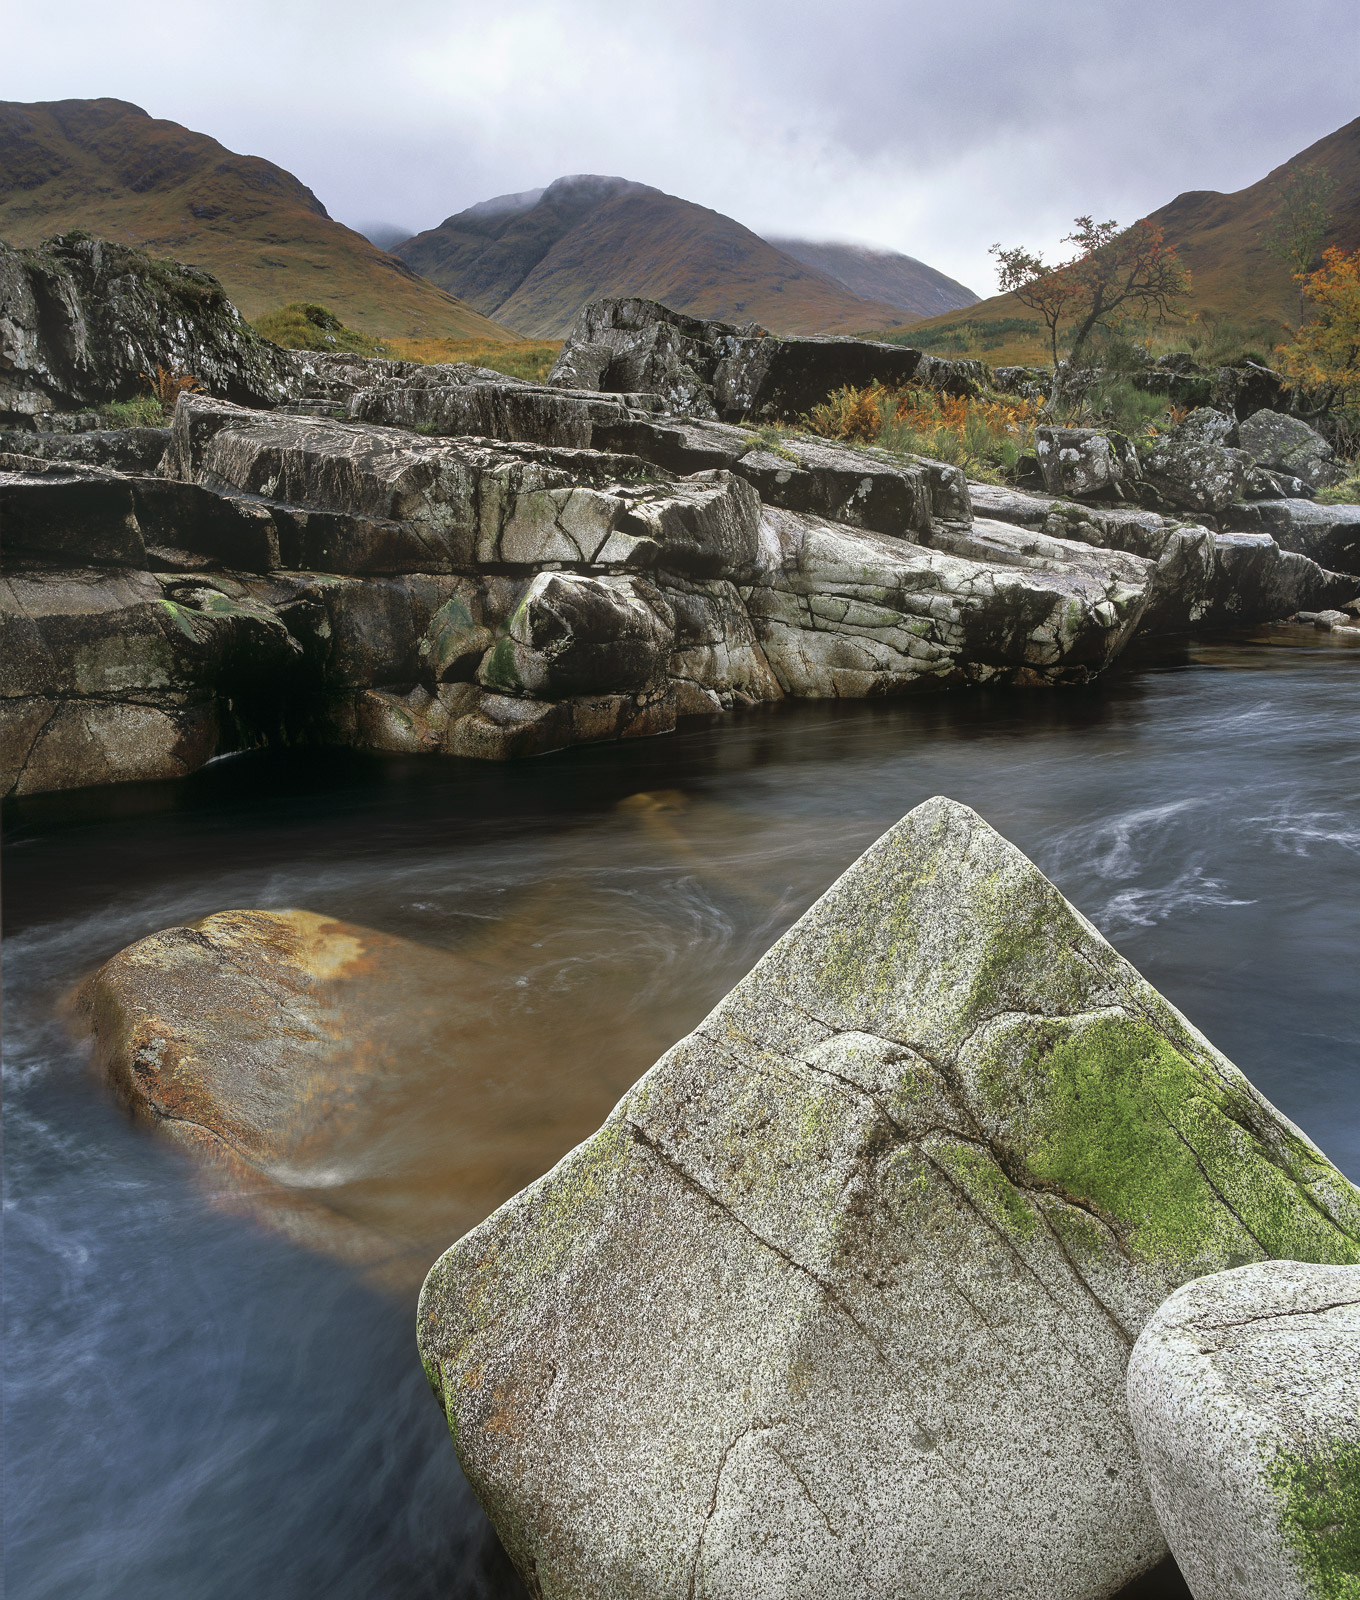 Glen Etive is filled with tumbling waterfalls and water carved rock but this section has some wonderful geometric shapes which...